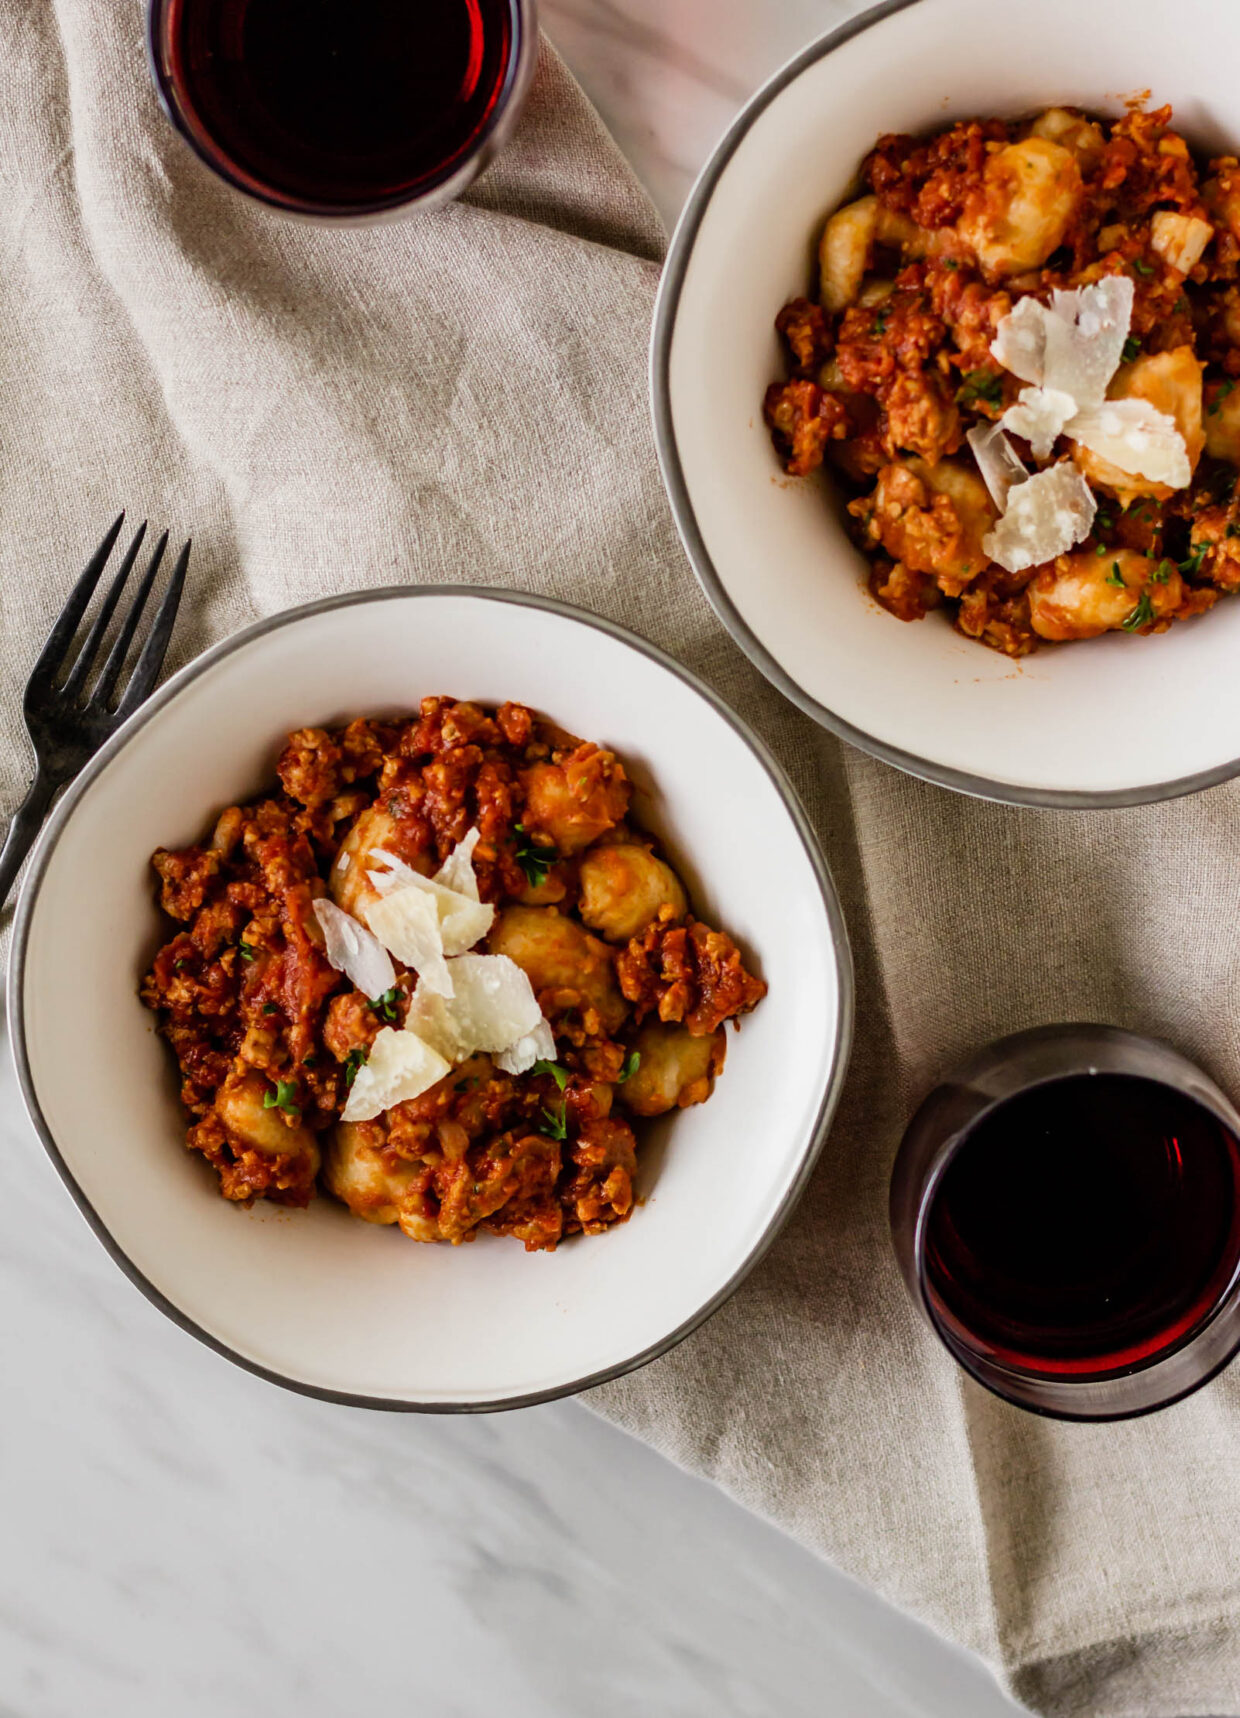 Gnocchi with Spicy Pork Ragù